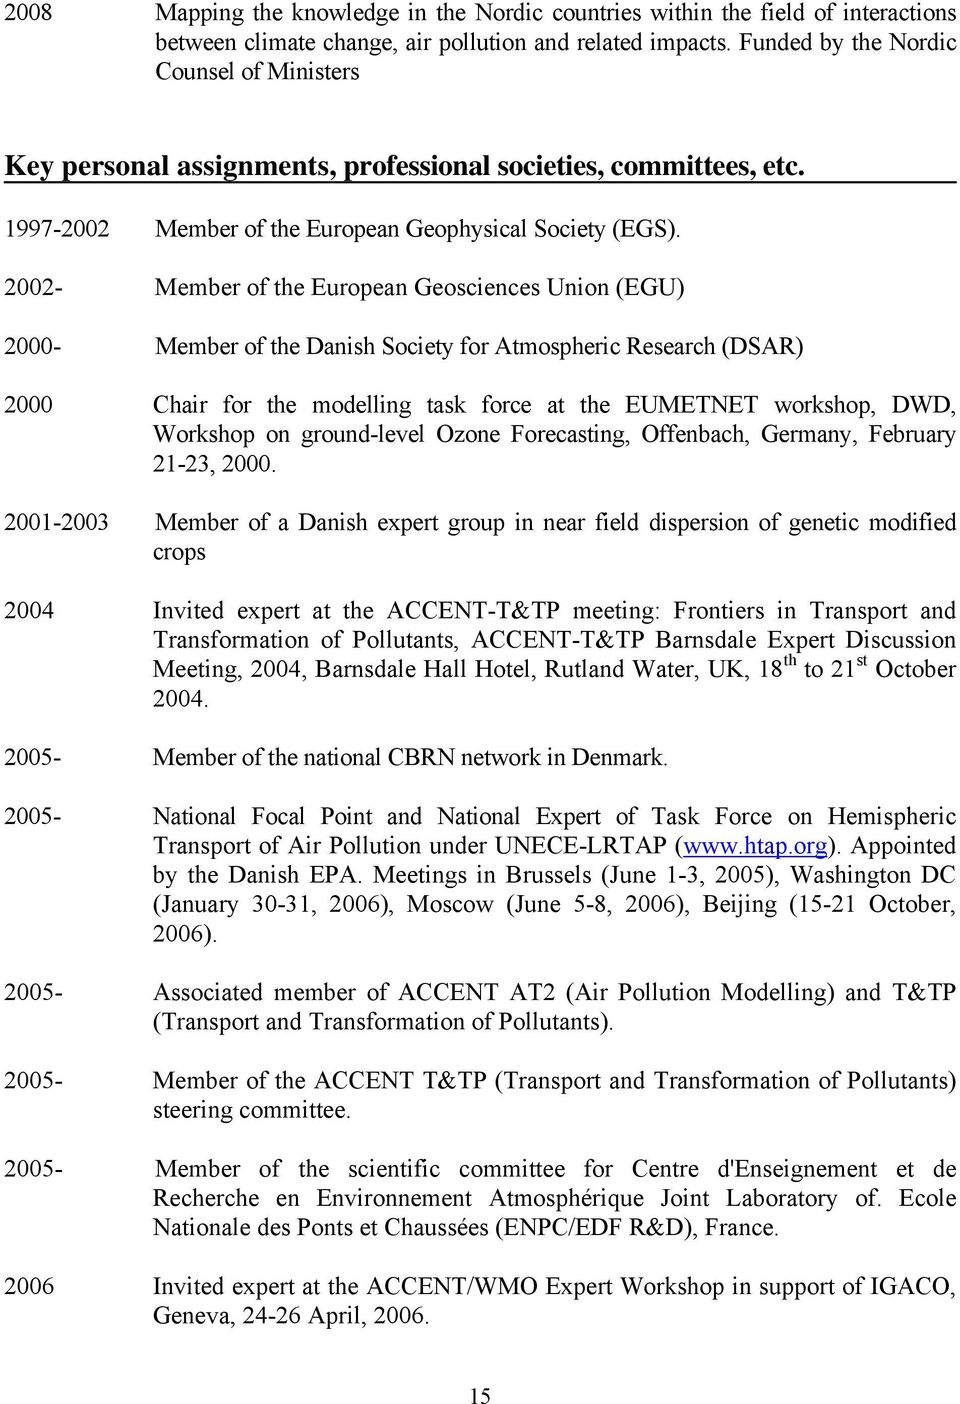 2002- Member of the European Geosciences Union (EGU) 2000- Member of the Danish Society for Atmospheric Research (DSAR) 2000 Chair for the modelling task force at the EUMETNET workshop, DWD, Workshop